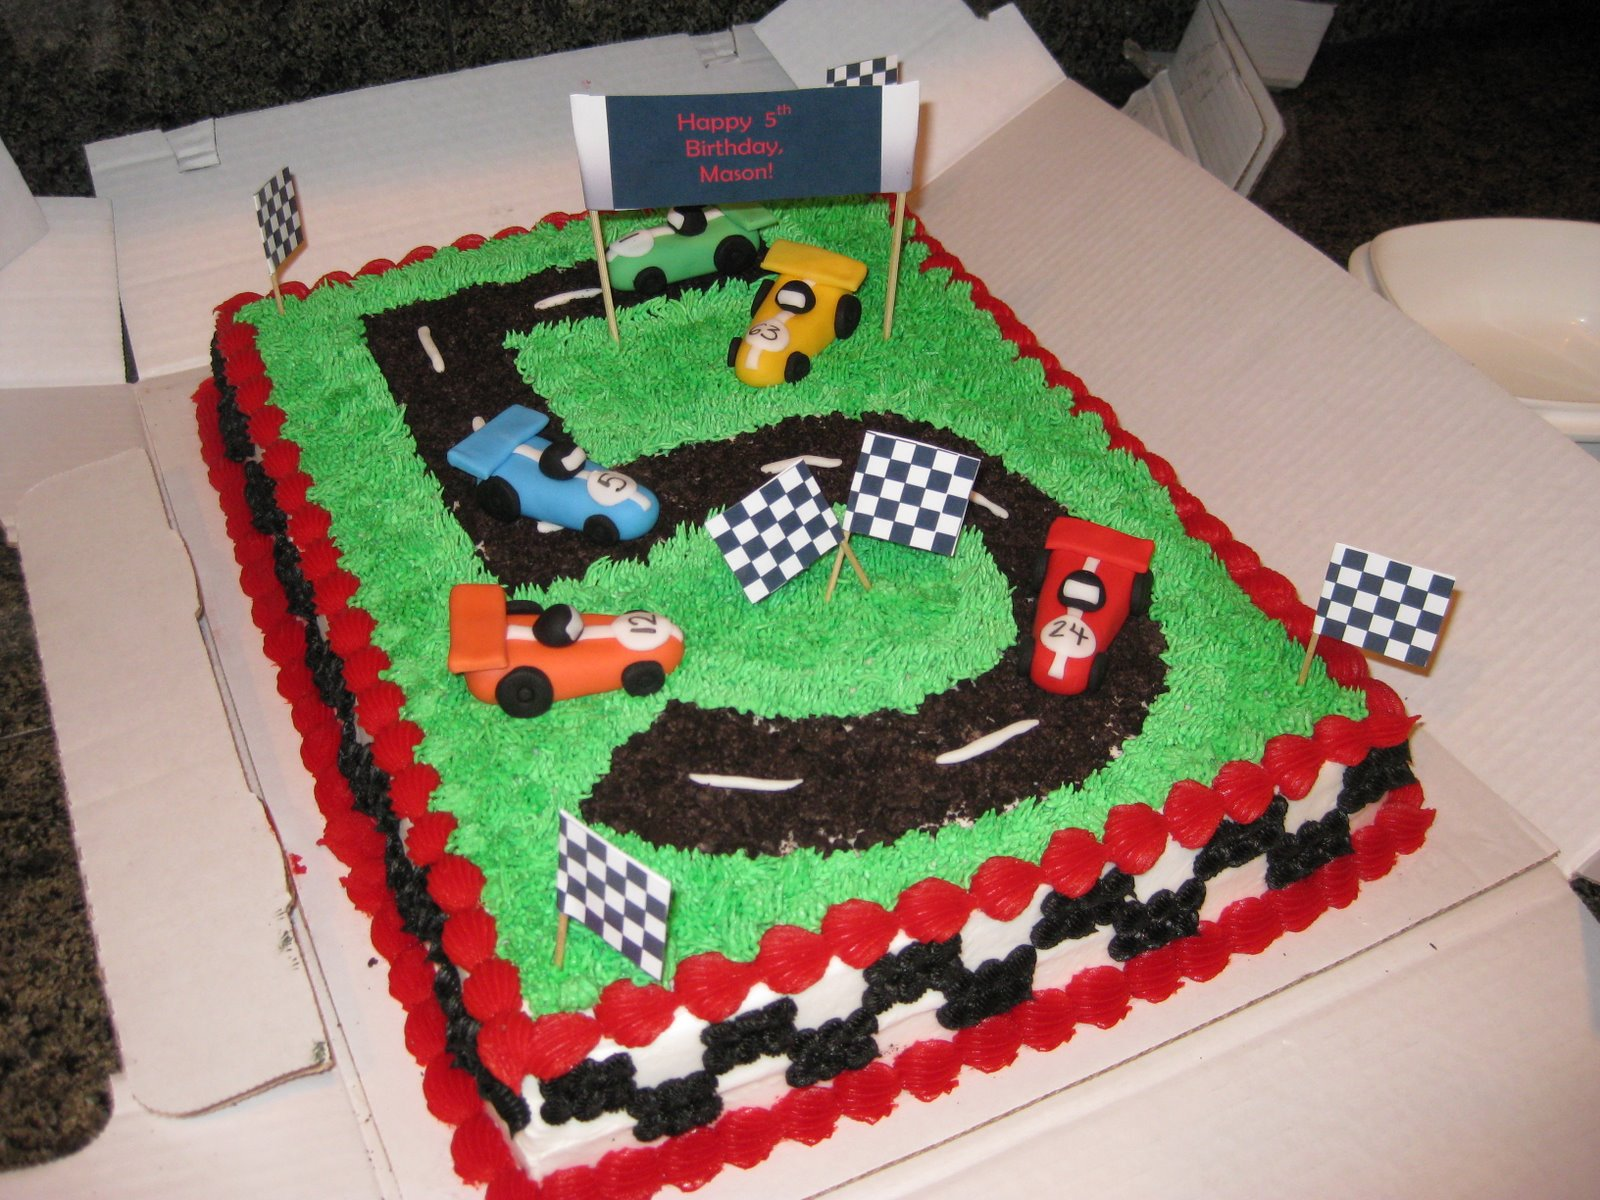 Cake Design Download : Cars cake - updated with pictures - BabyCenter